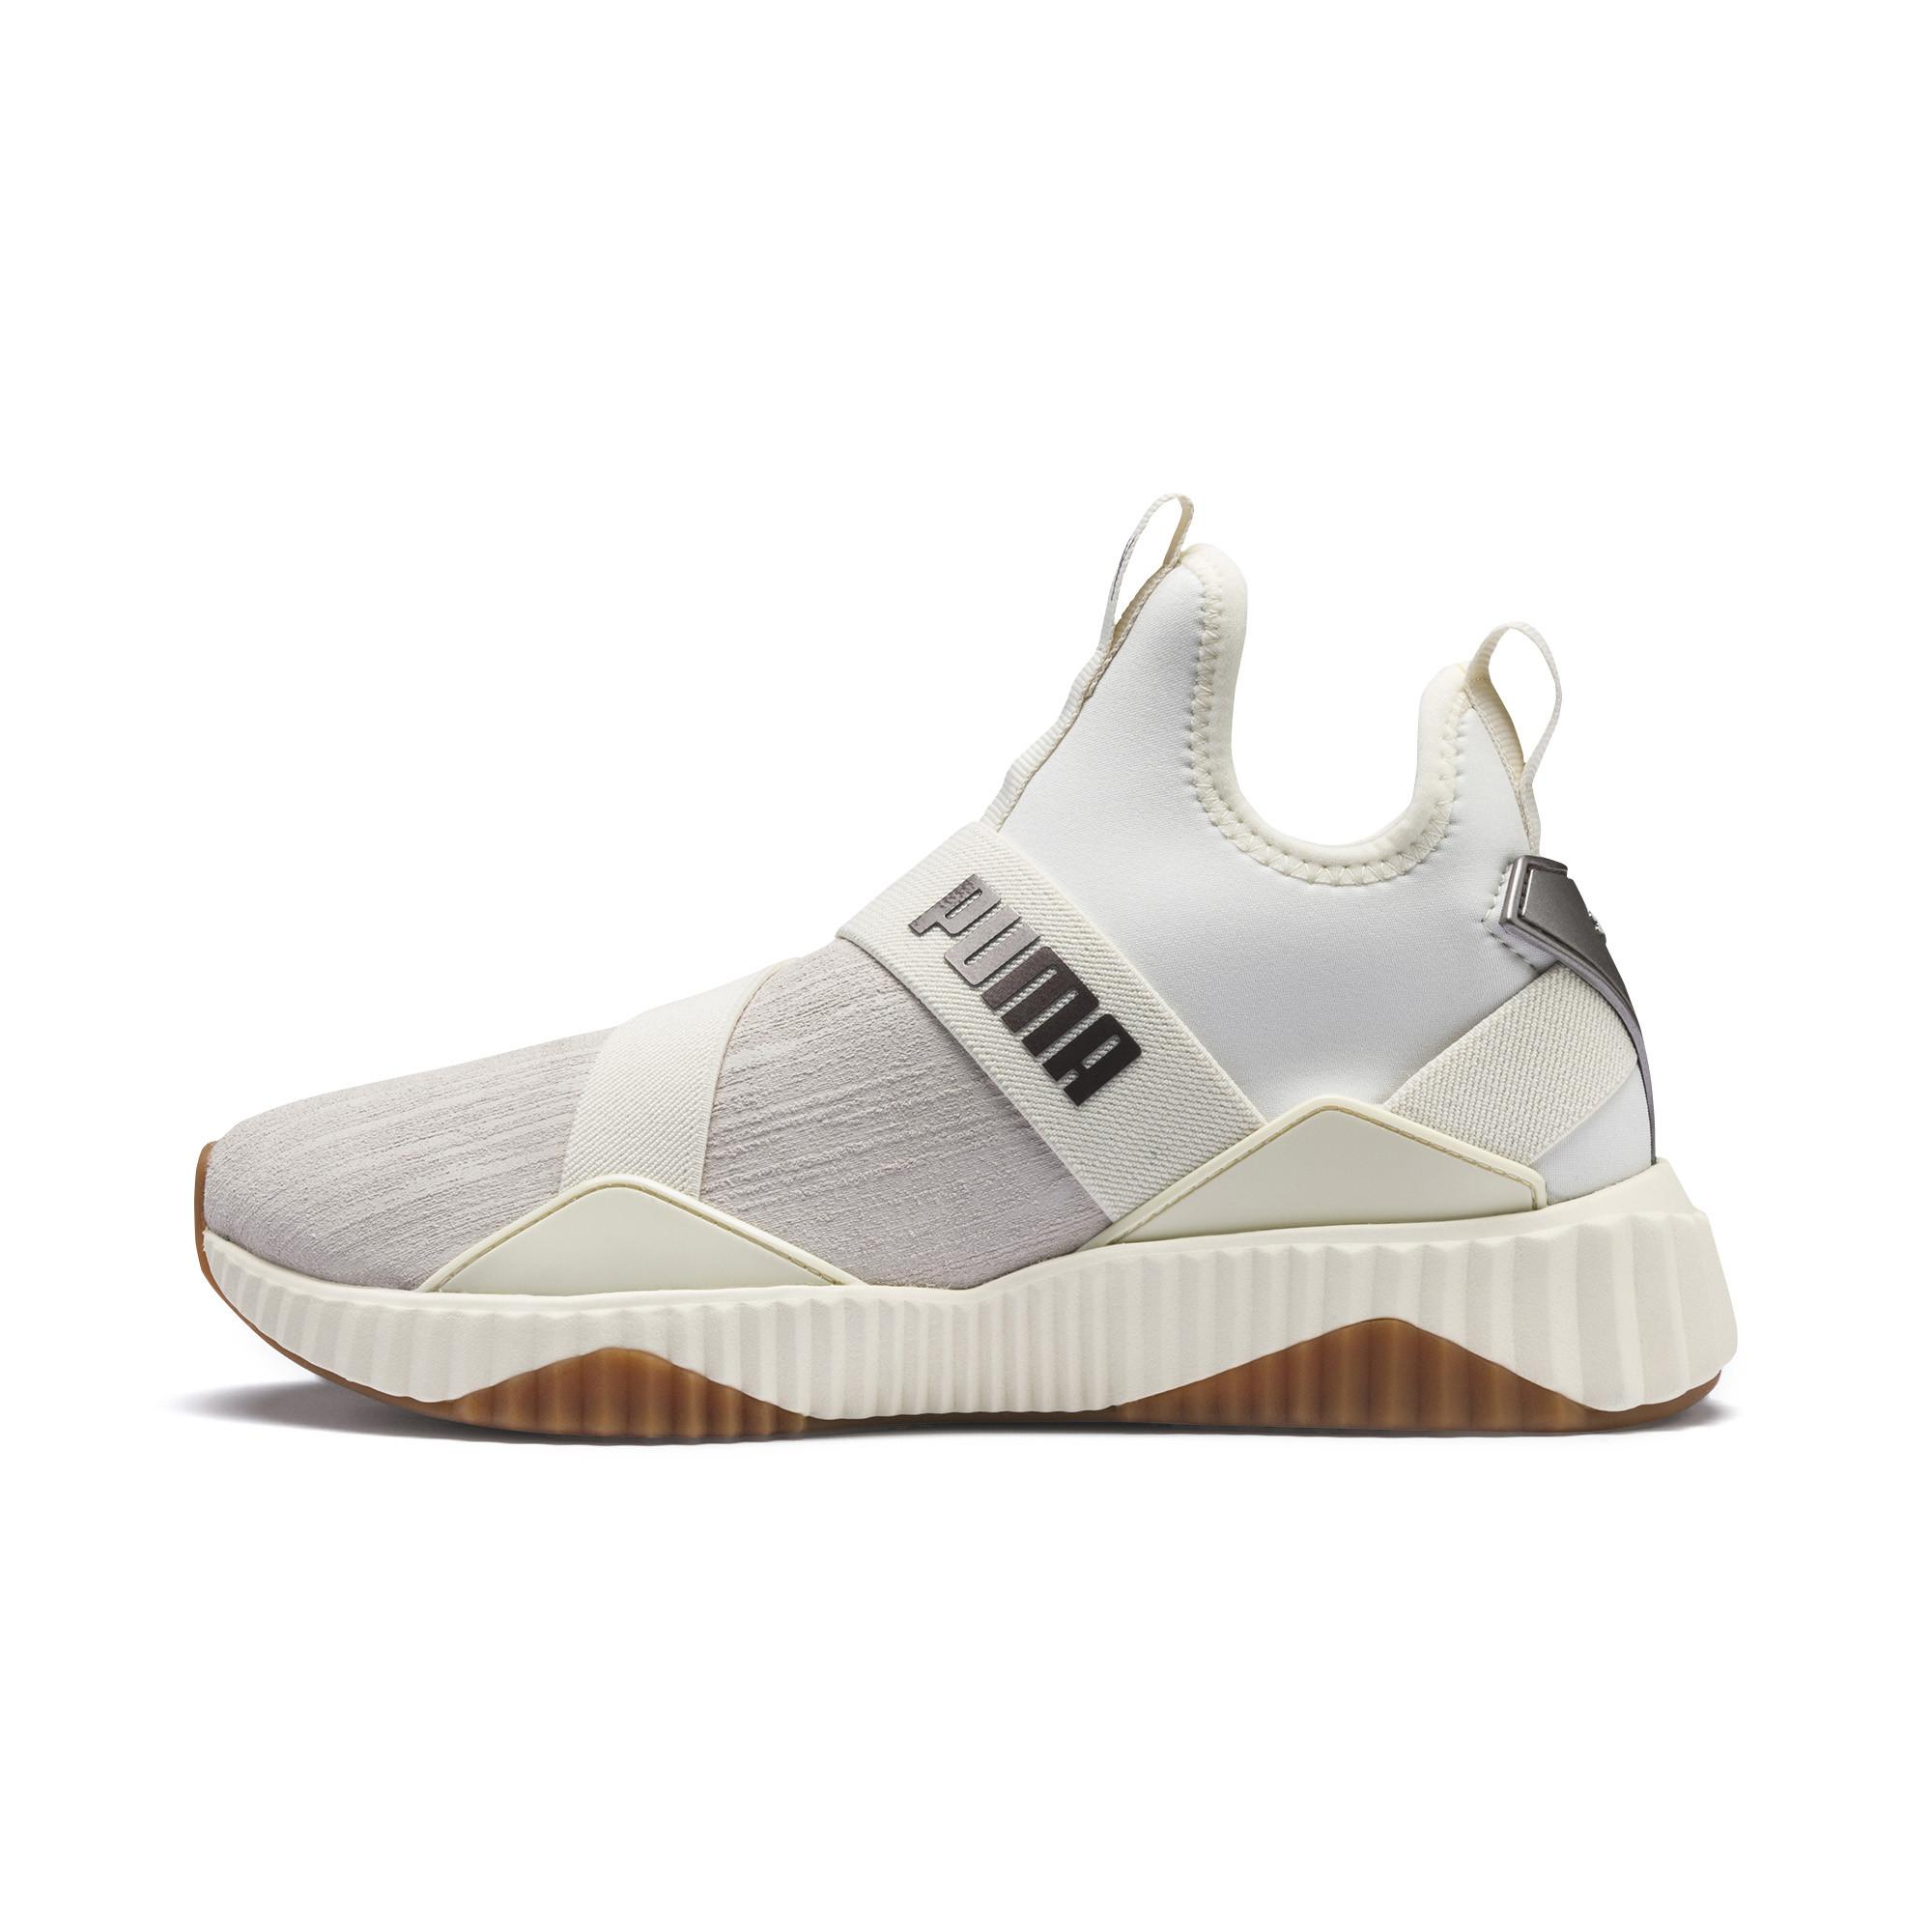 PUMA Defy Mid Luxe Wn's in White for